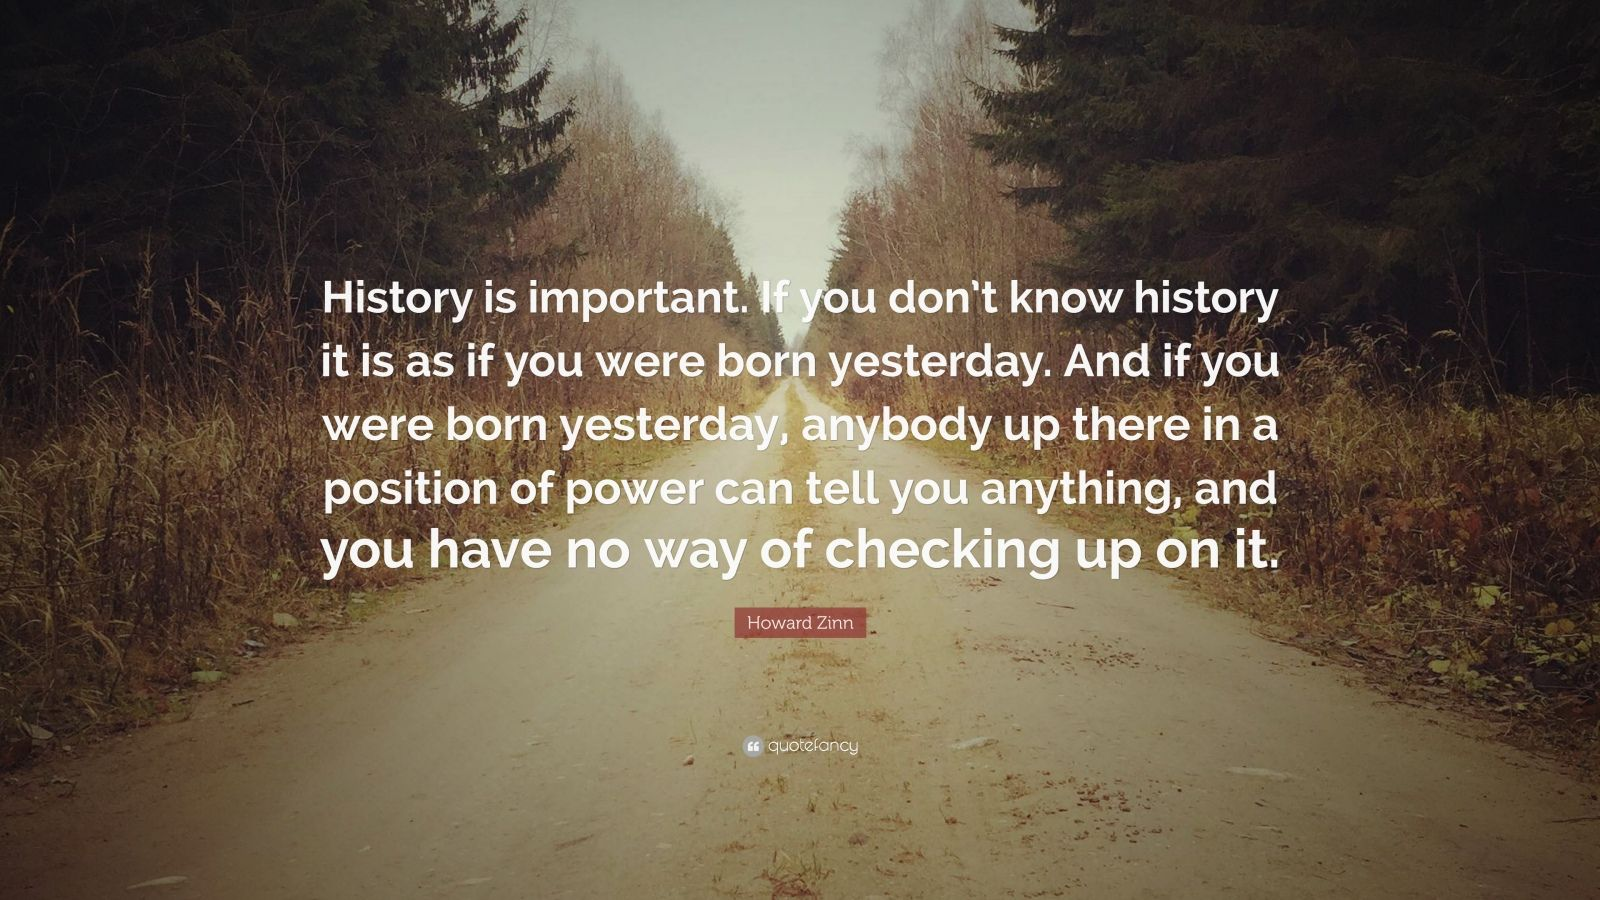 "Howard Zinn Quote: ""History is important. If you don't know history it is as if you were born yesterday. And if you were born yesterday, anybody up there in a position of power can tell you anything, and you have no way of checking up on it."""